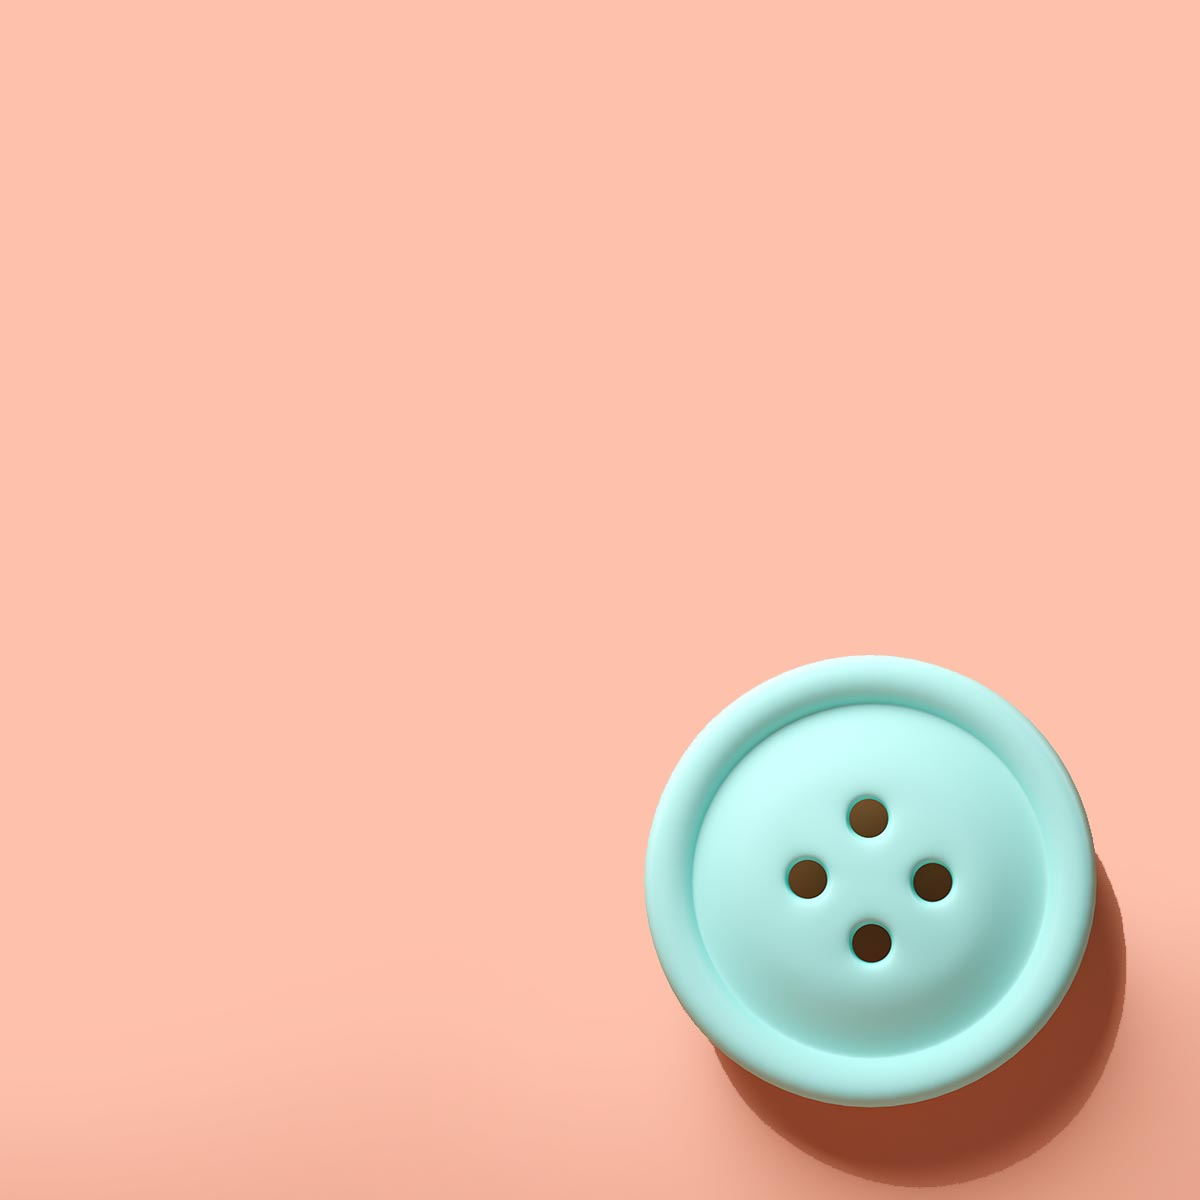 BUTTON STYLE PACKS -